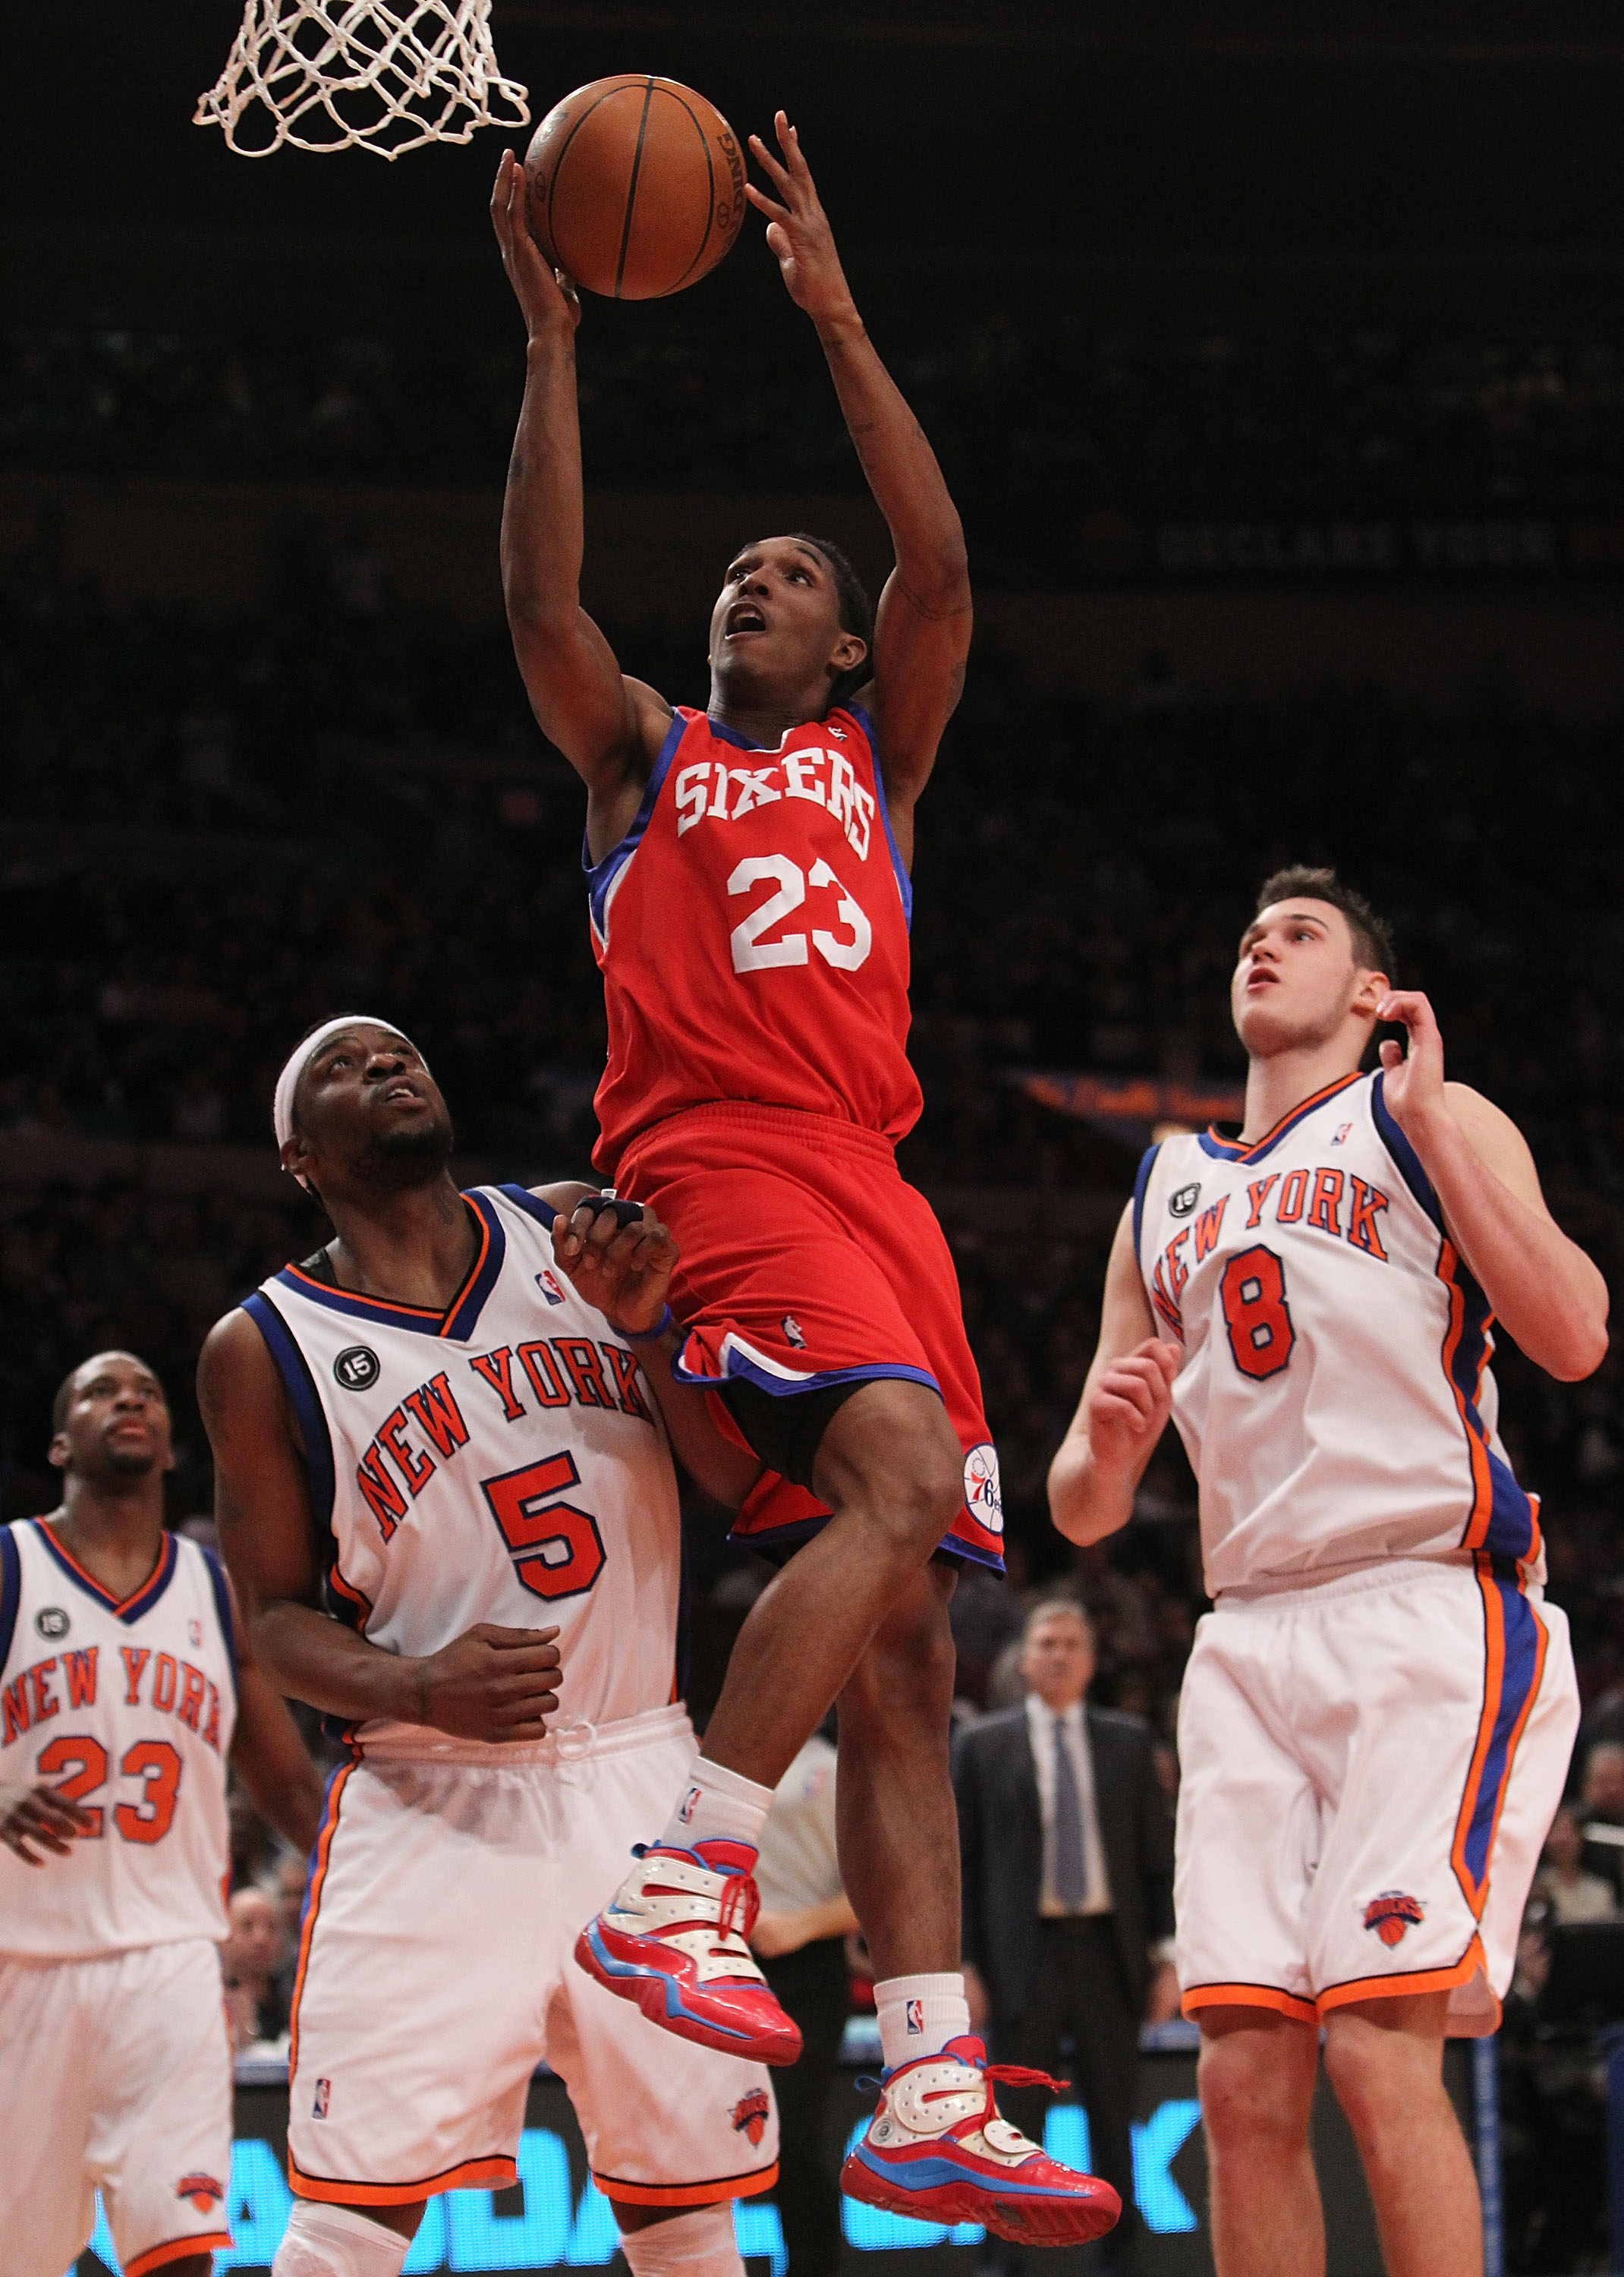 NEW YORK - MARCH 19:  Louis Williams #23 of the Philadelphia 76ers lays the ball up in between Bill Walker #5 and Danilo Gallinari #8 of the New York Knicks at Madison Square Garden on March 19, 2010 in New York City. NOTE TO USER: User expressly acknowle